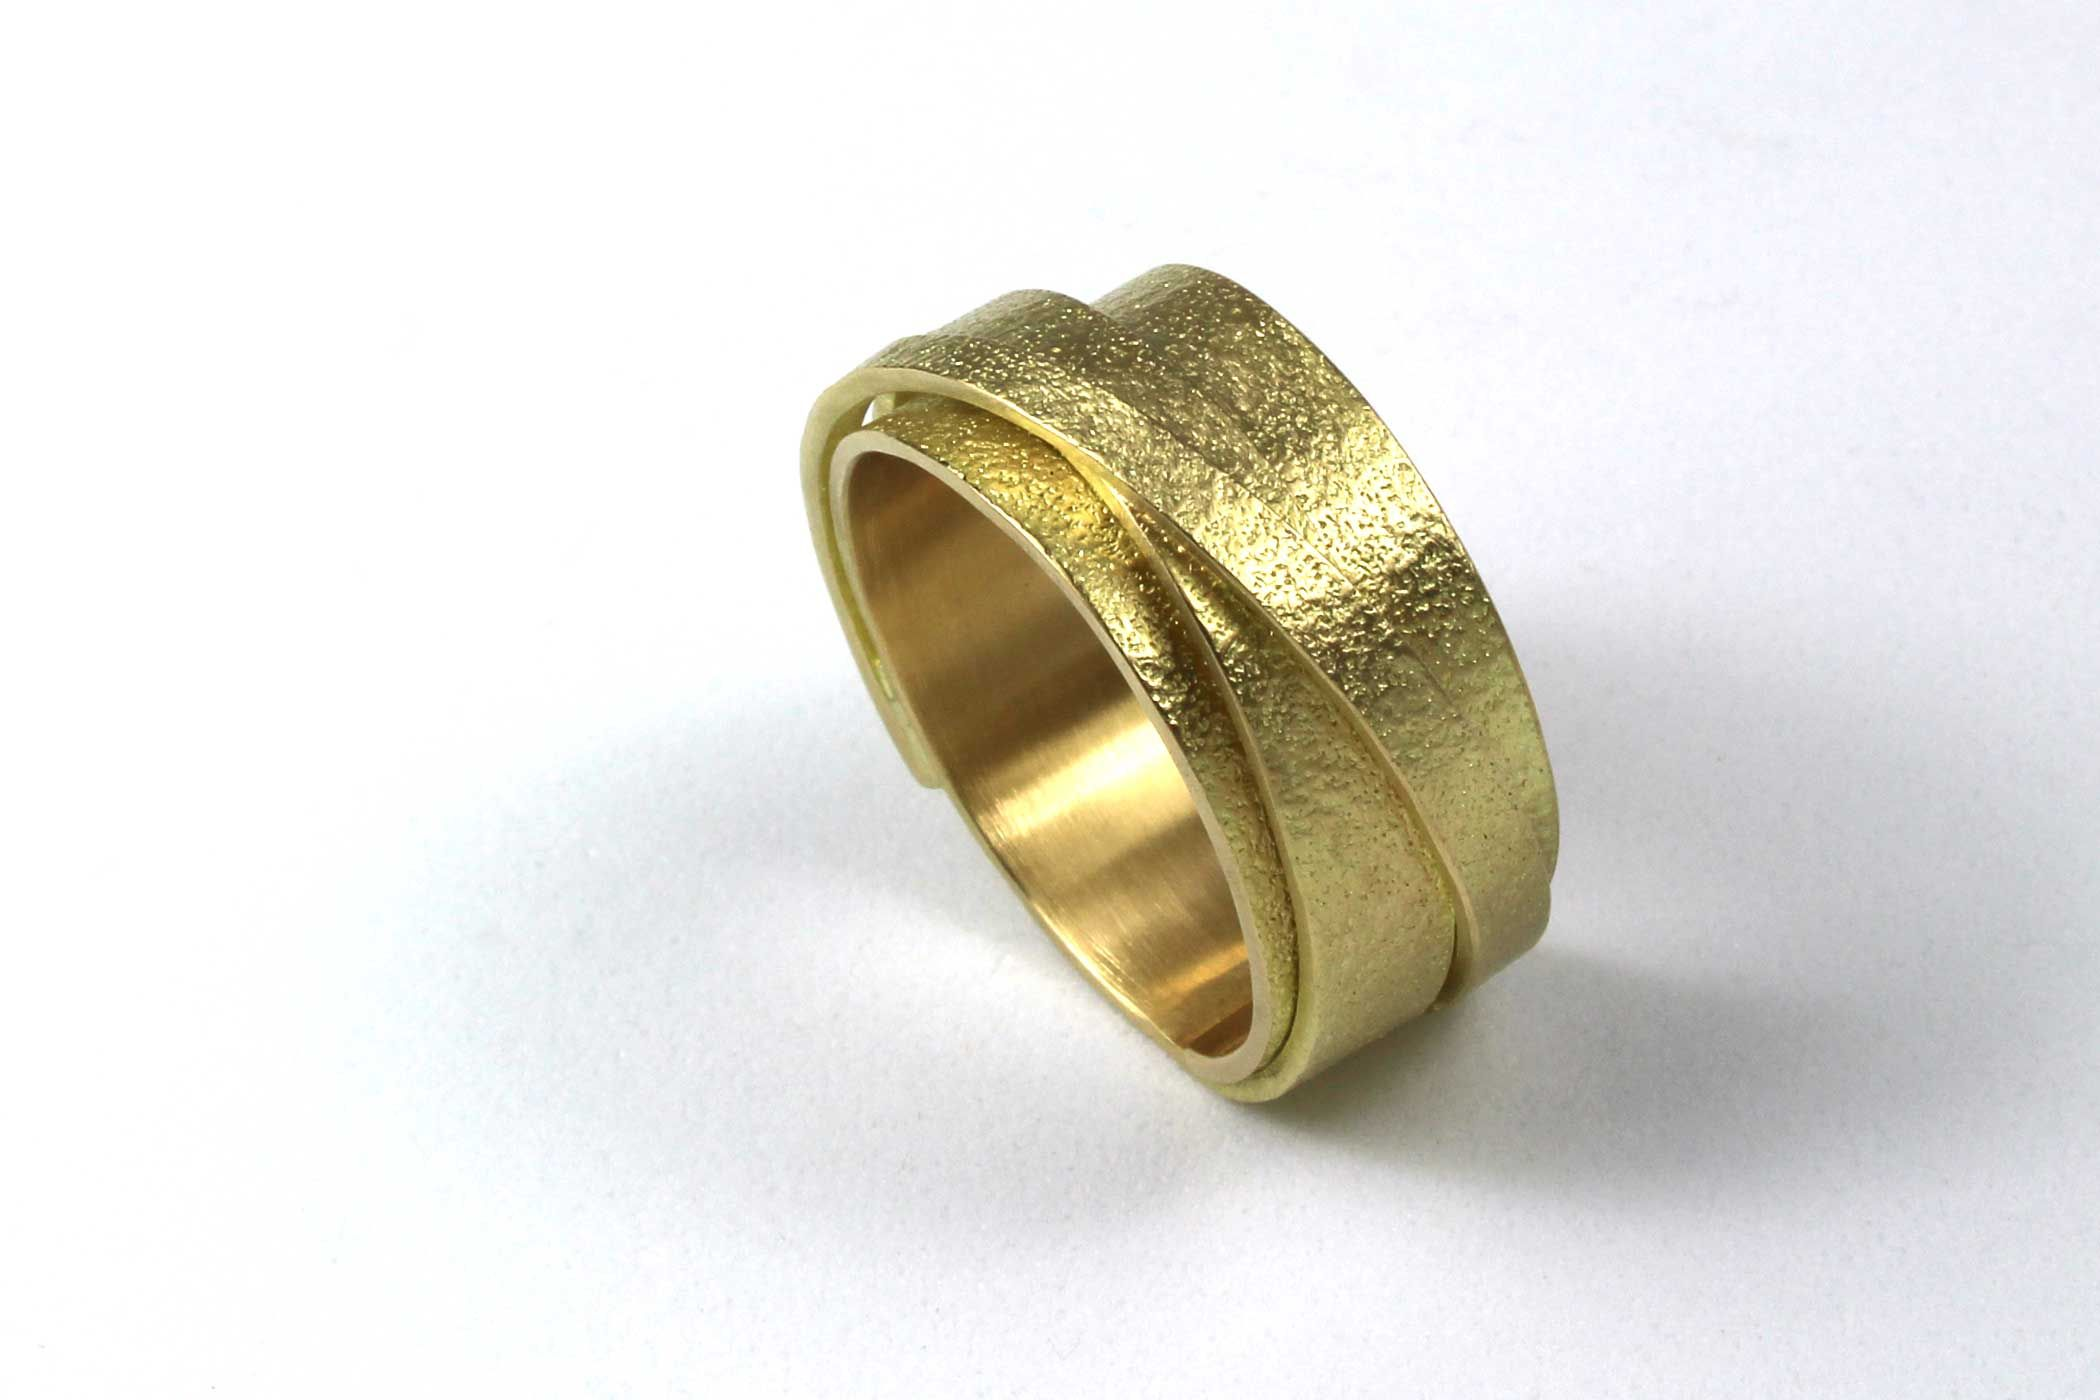 Deborrah Daher, Wrapped Wedding Band, 18k